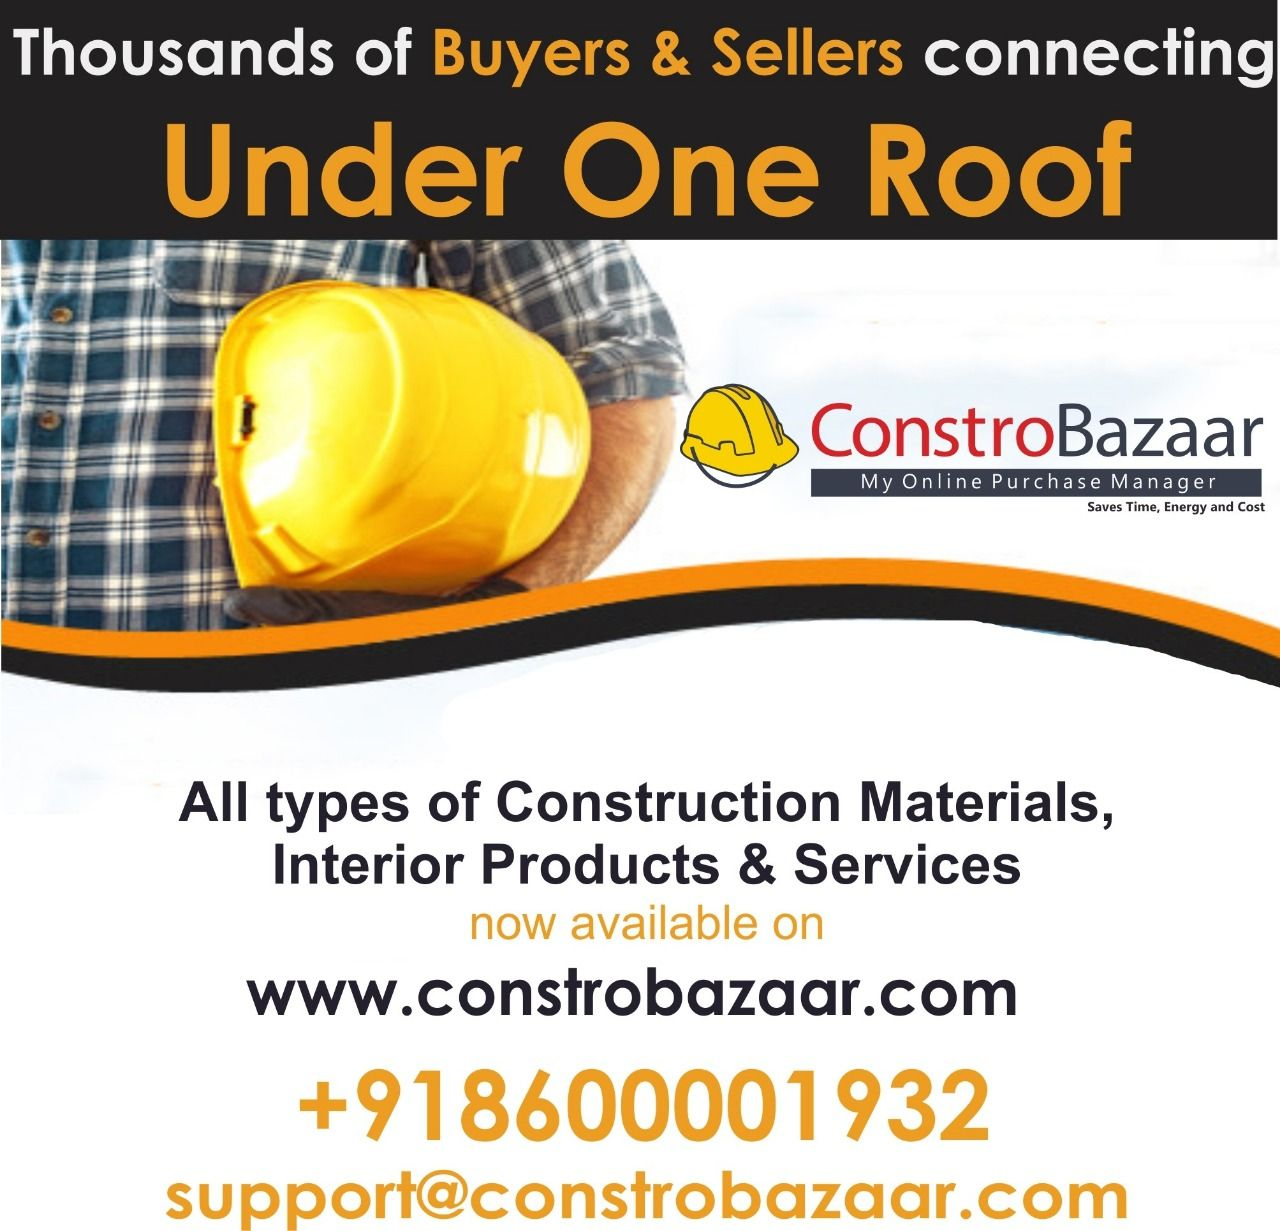 Building Materials | Buy & Sell Construction Materials Online at ConstroBazaar